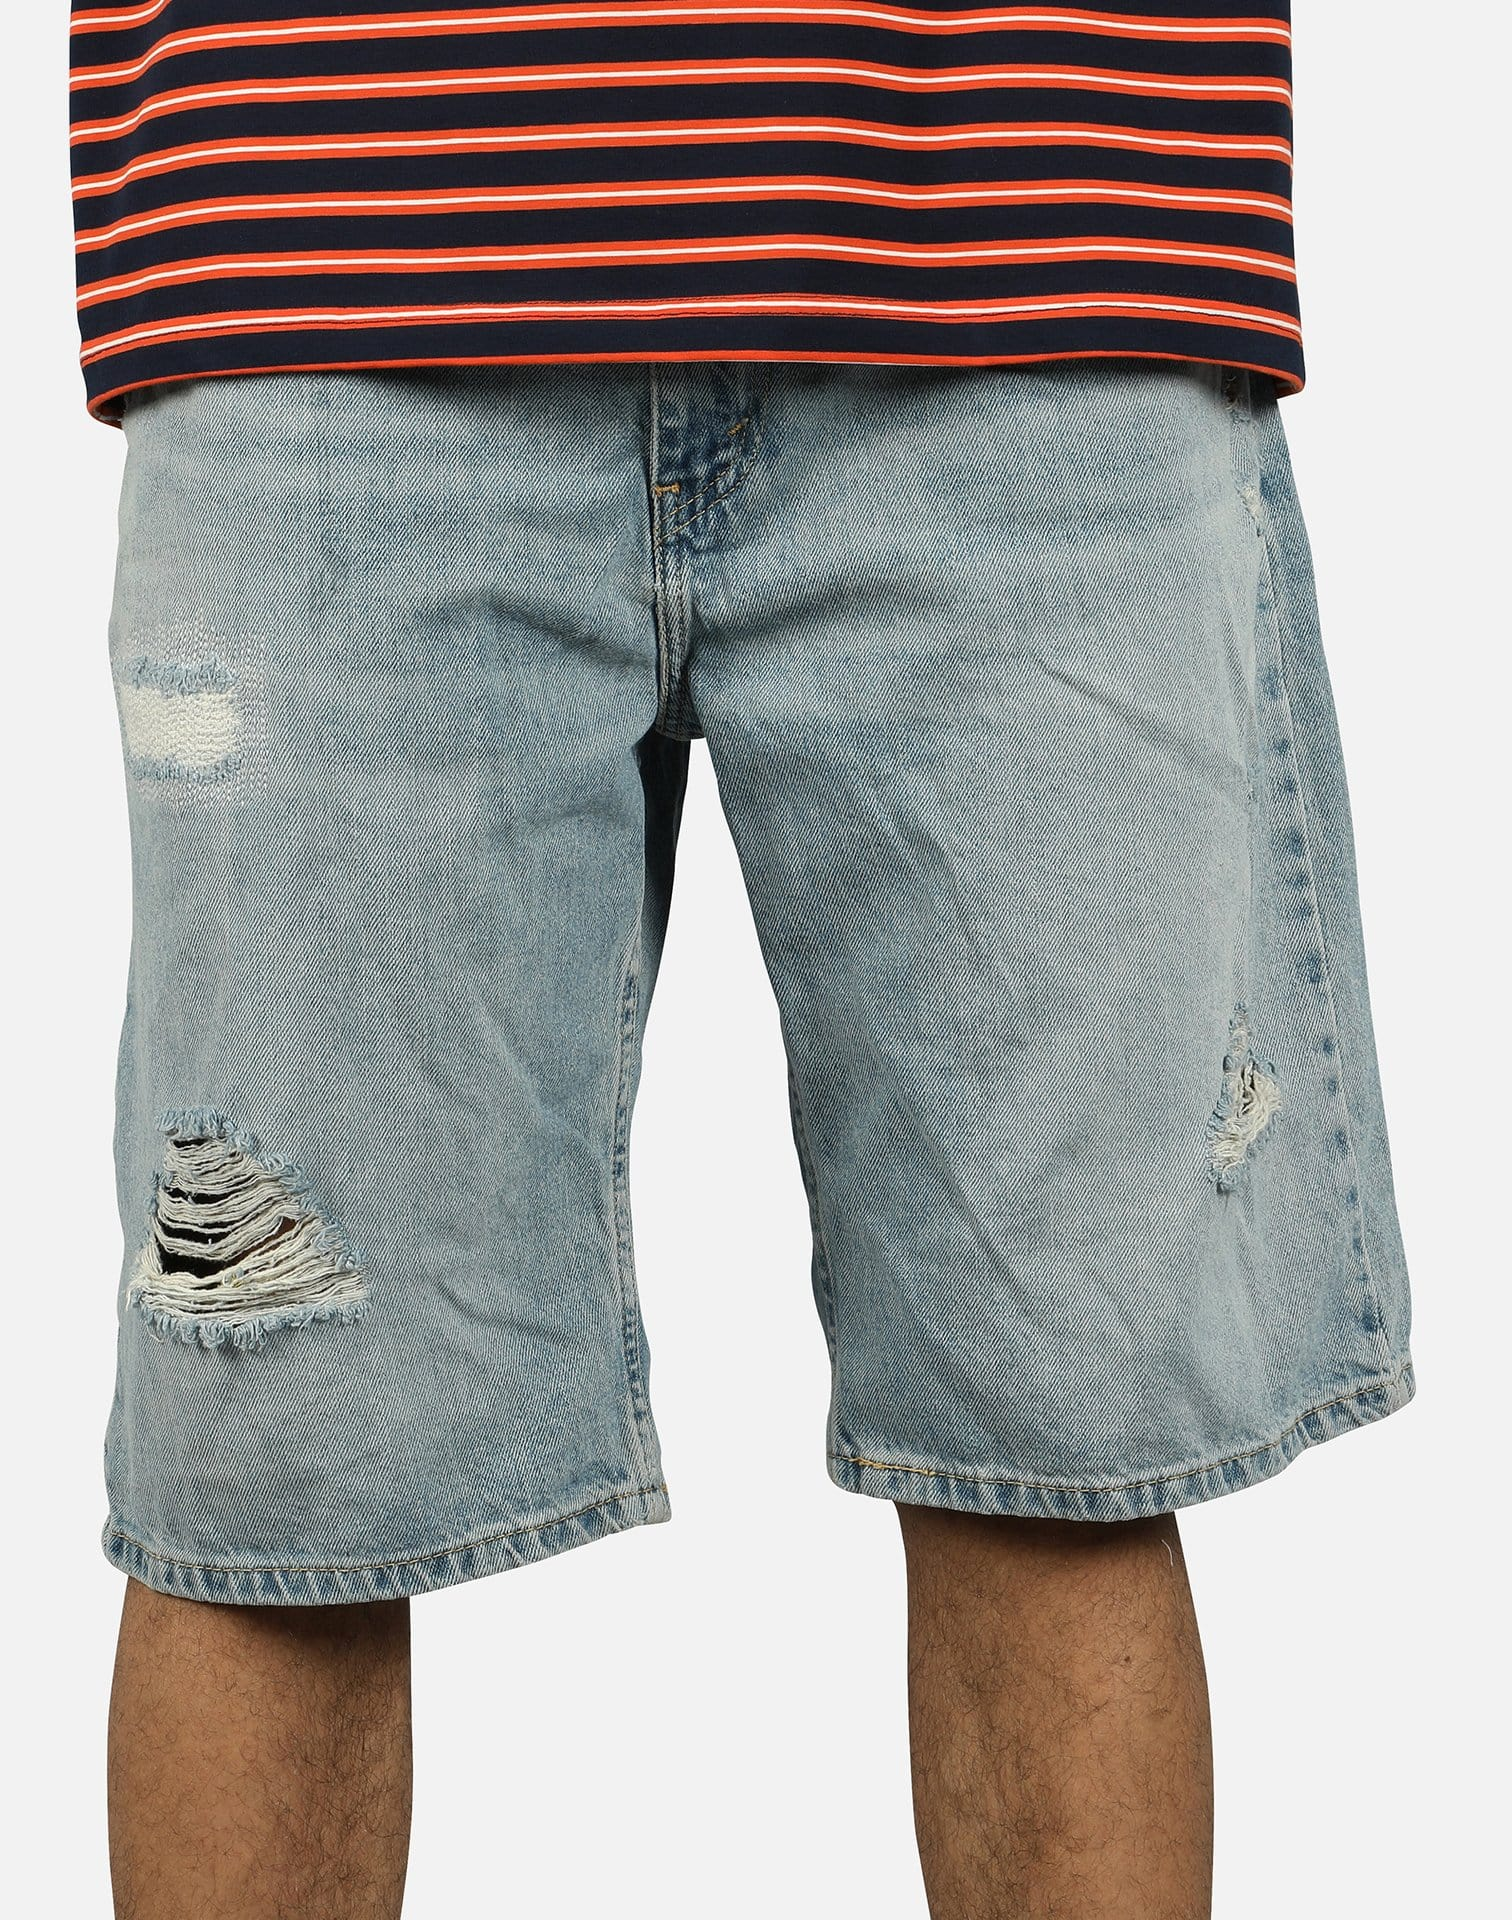 Levi's Men's 569 Denim Shorts